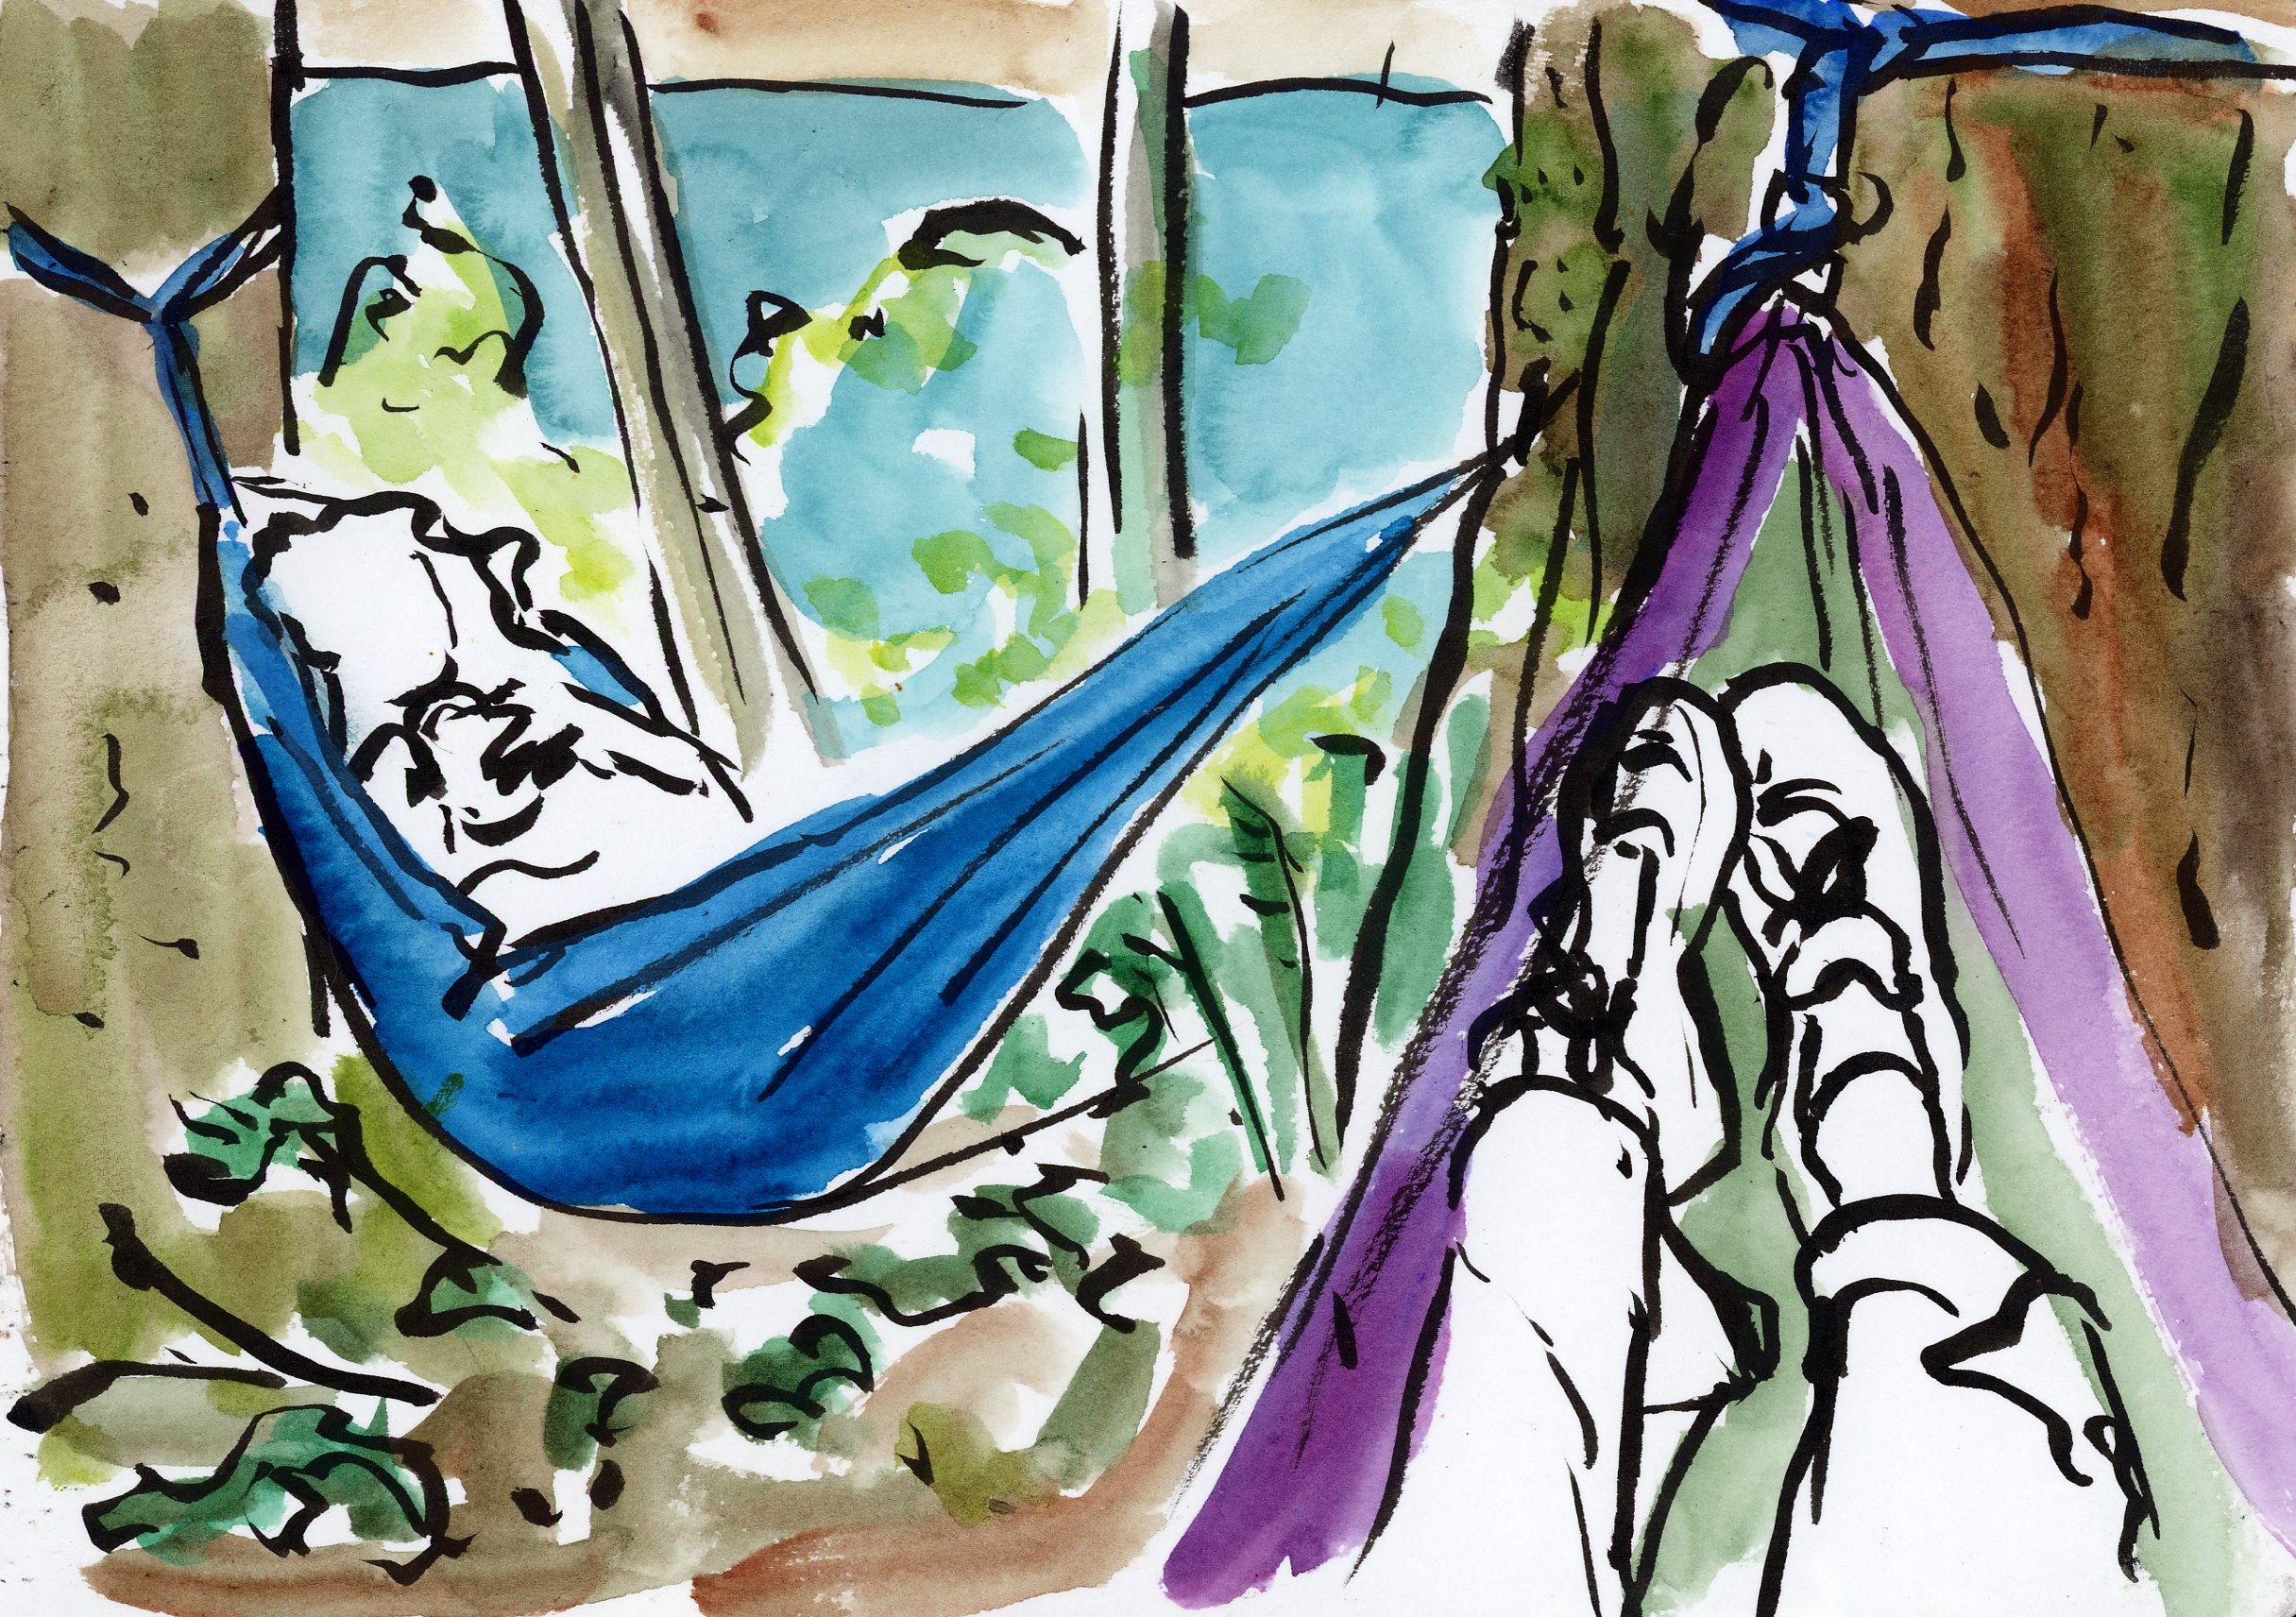 Our campsite was just yards up from the lake front and we had a great view through the trees. We hung Danielle's hammocks and we had our morning coffee and contemplation in them. I, of course, chugged my coffee and put it down so I could draw. These little stuff sack hammocks sure are fun and I can't believe how easily you can set them up. I may have to buy one!